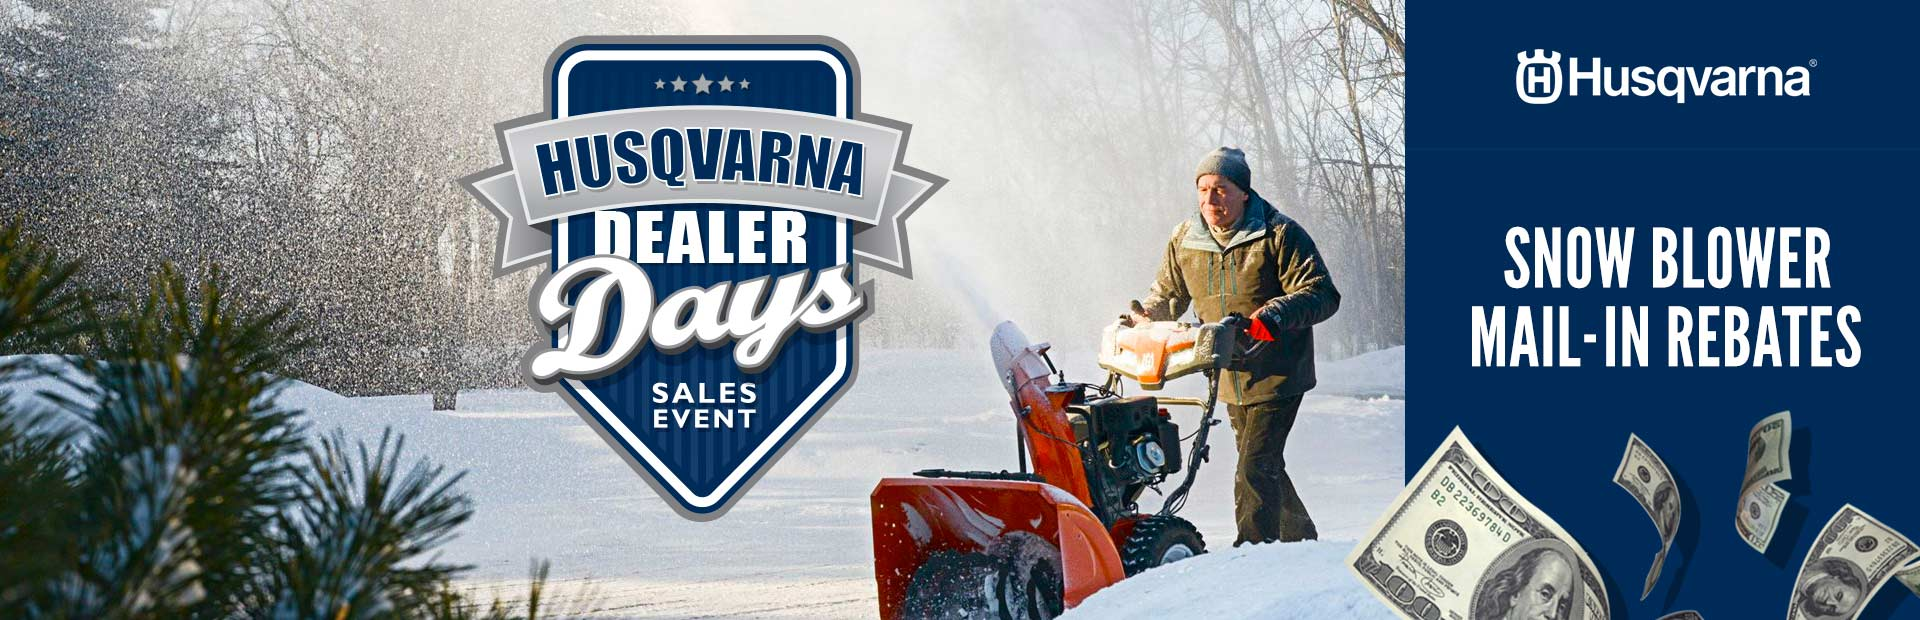 Snow Blower Mail-In Rebates